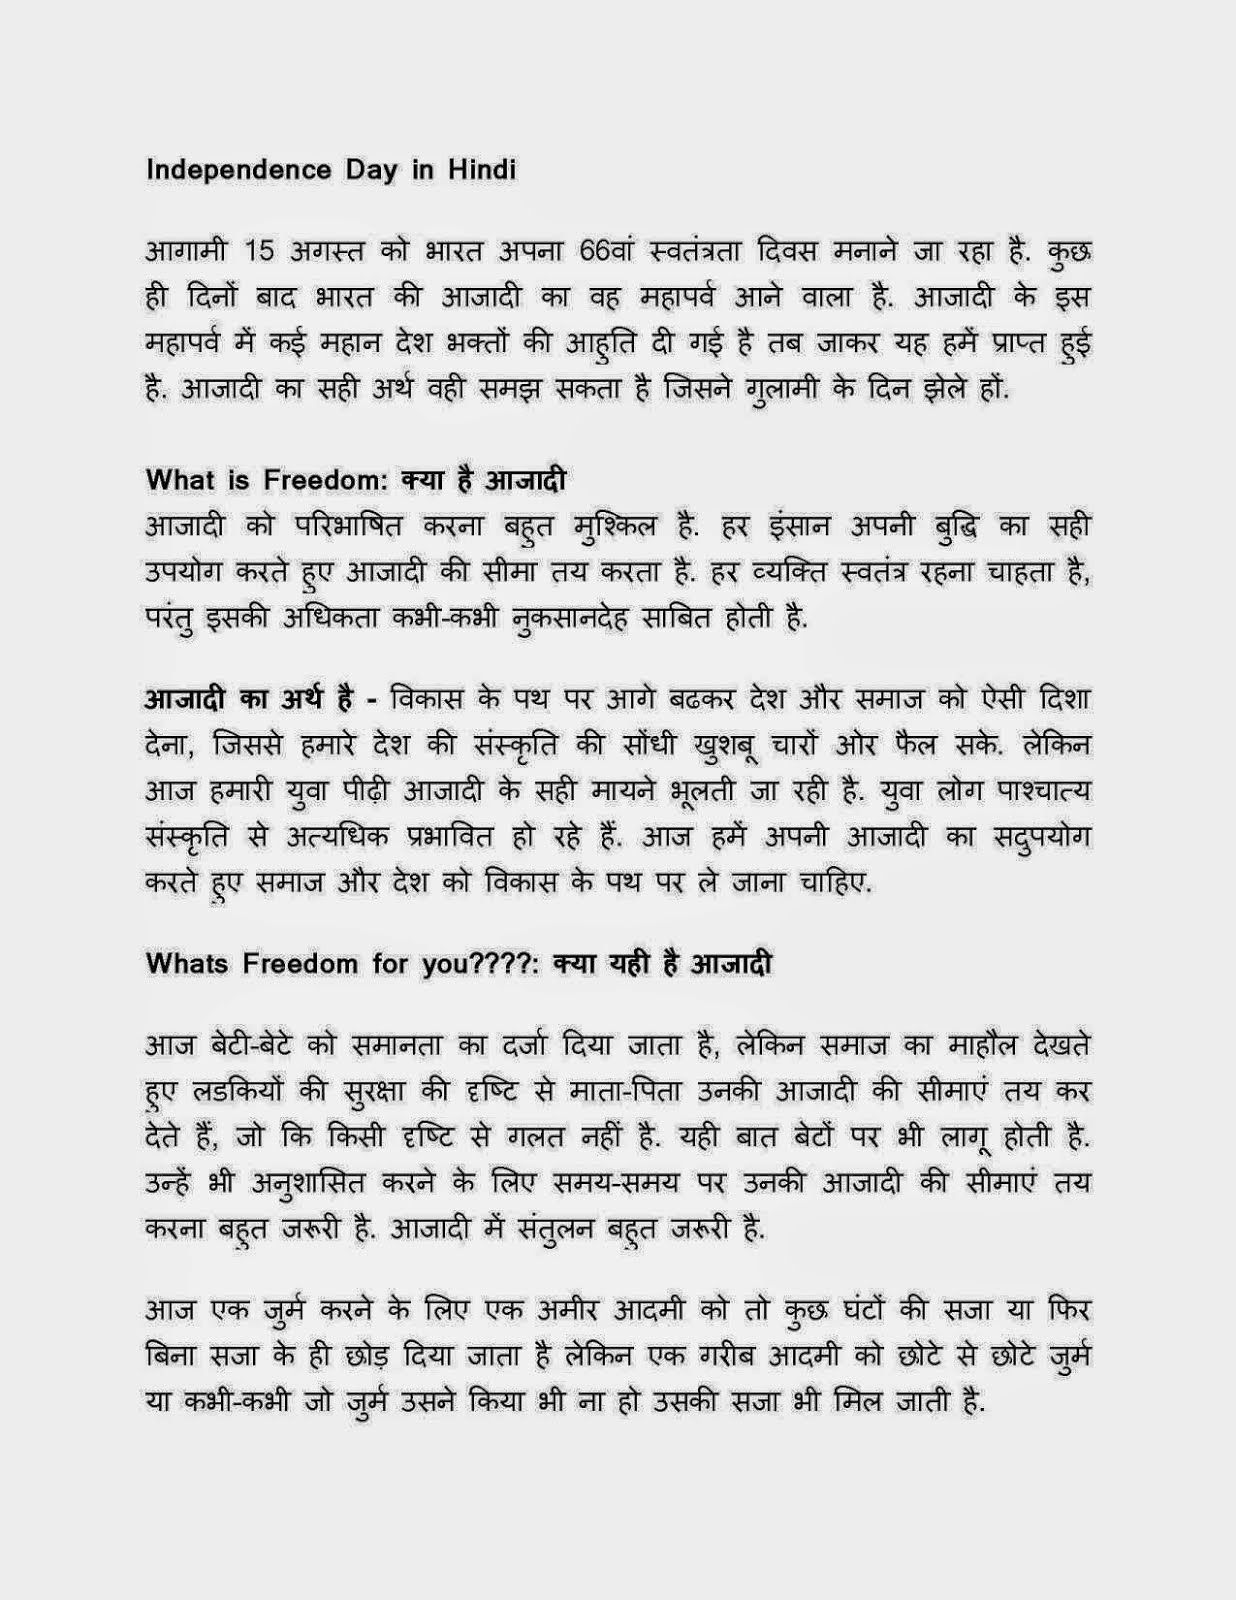 High School Essays Samples Independence Day Poems For School Kids In Hindi Health Care Essay also Essays For High School Students To Read Independence Day Poems For School Kids In Hindi  A  Pinterest  Reflective Essay On High School